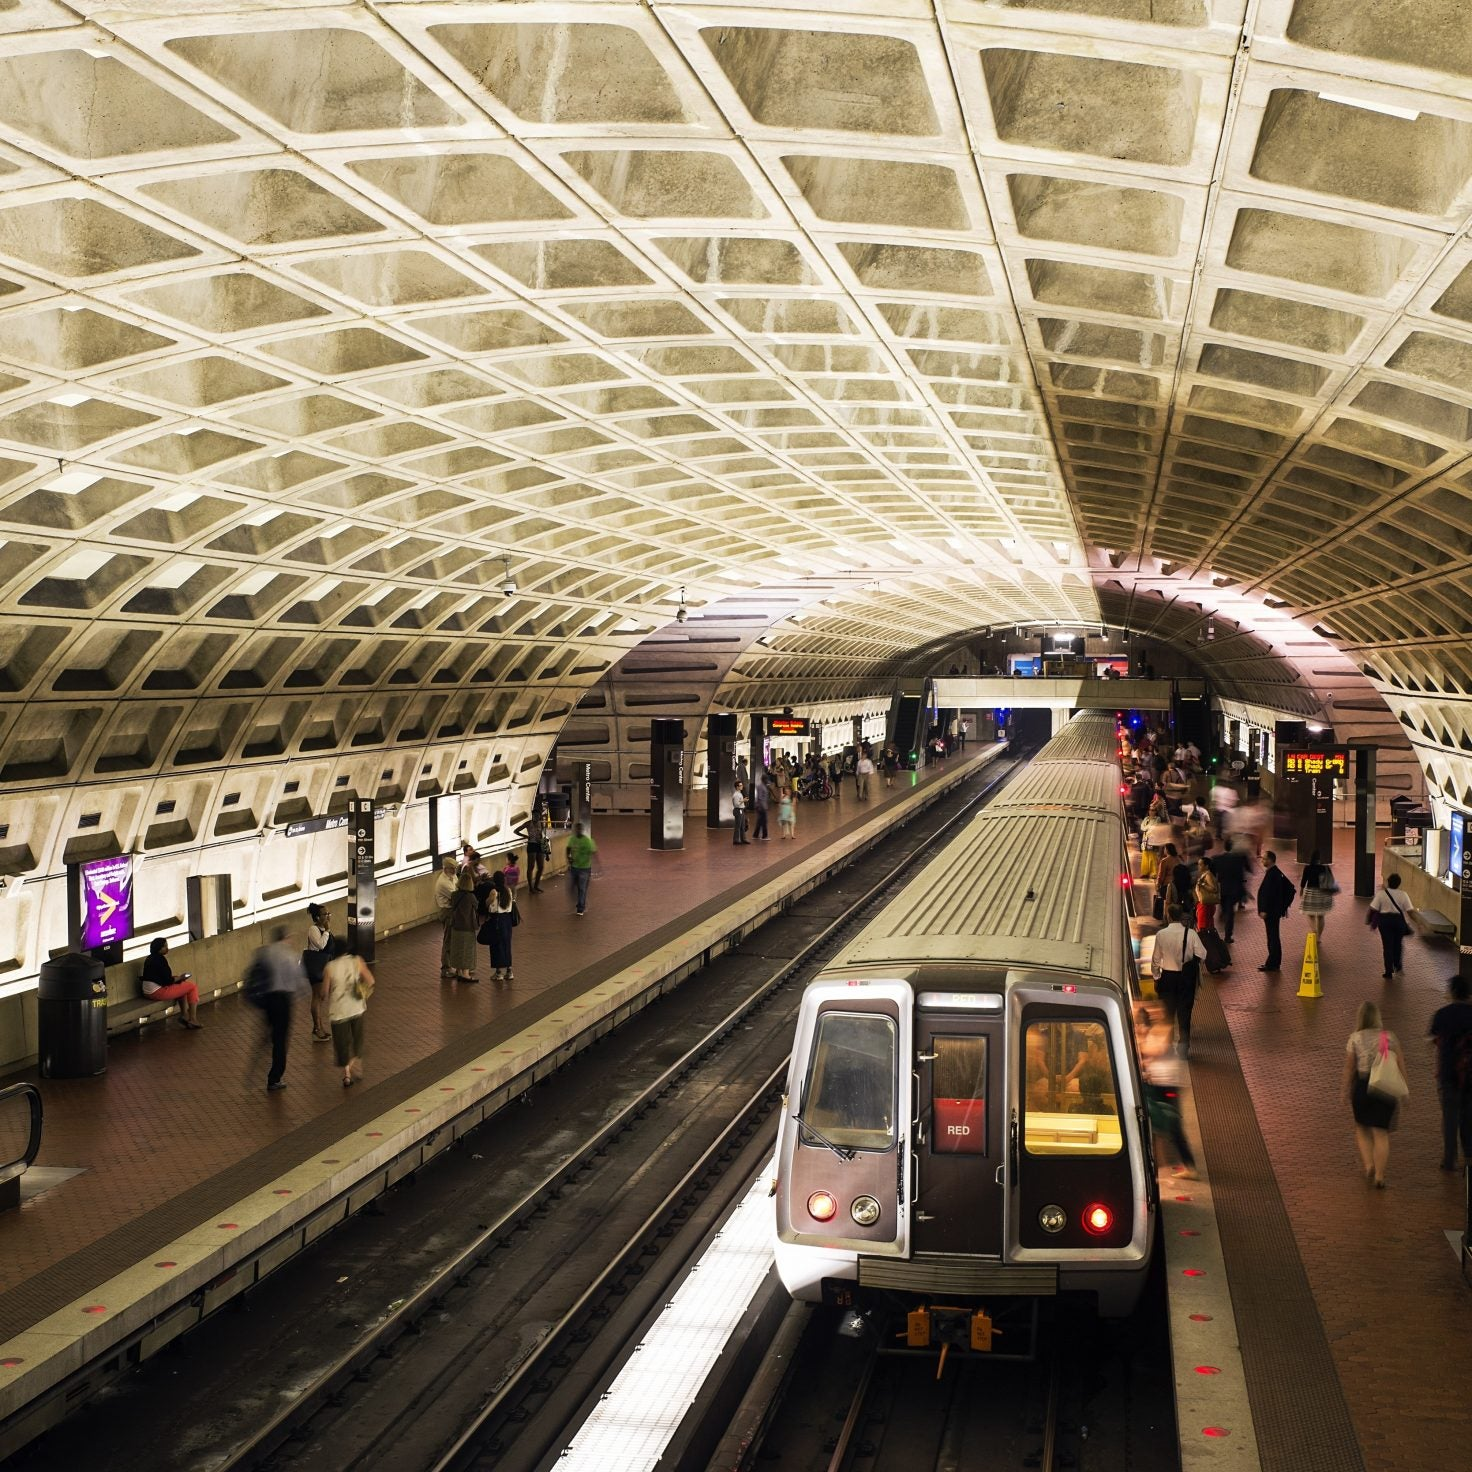 Book Publisher Eviscerates Writer Following DC Metro Shaming Lawsuit